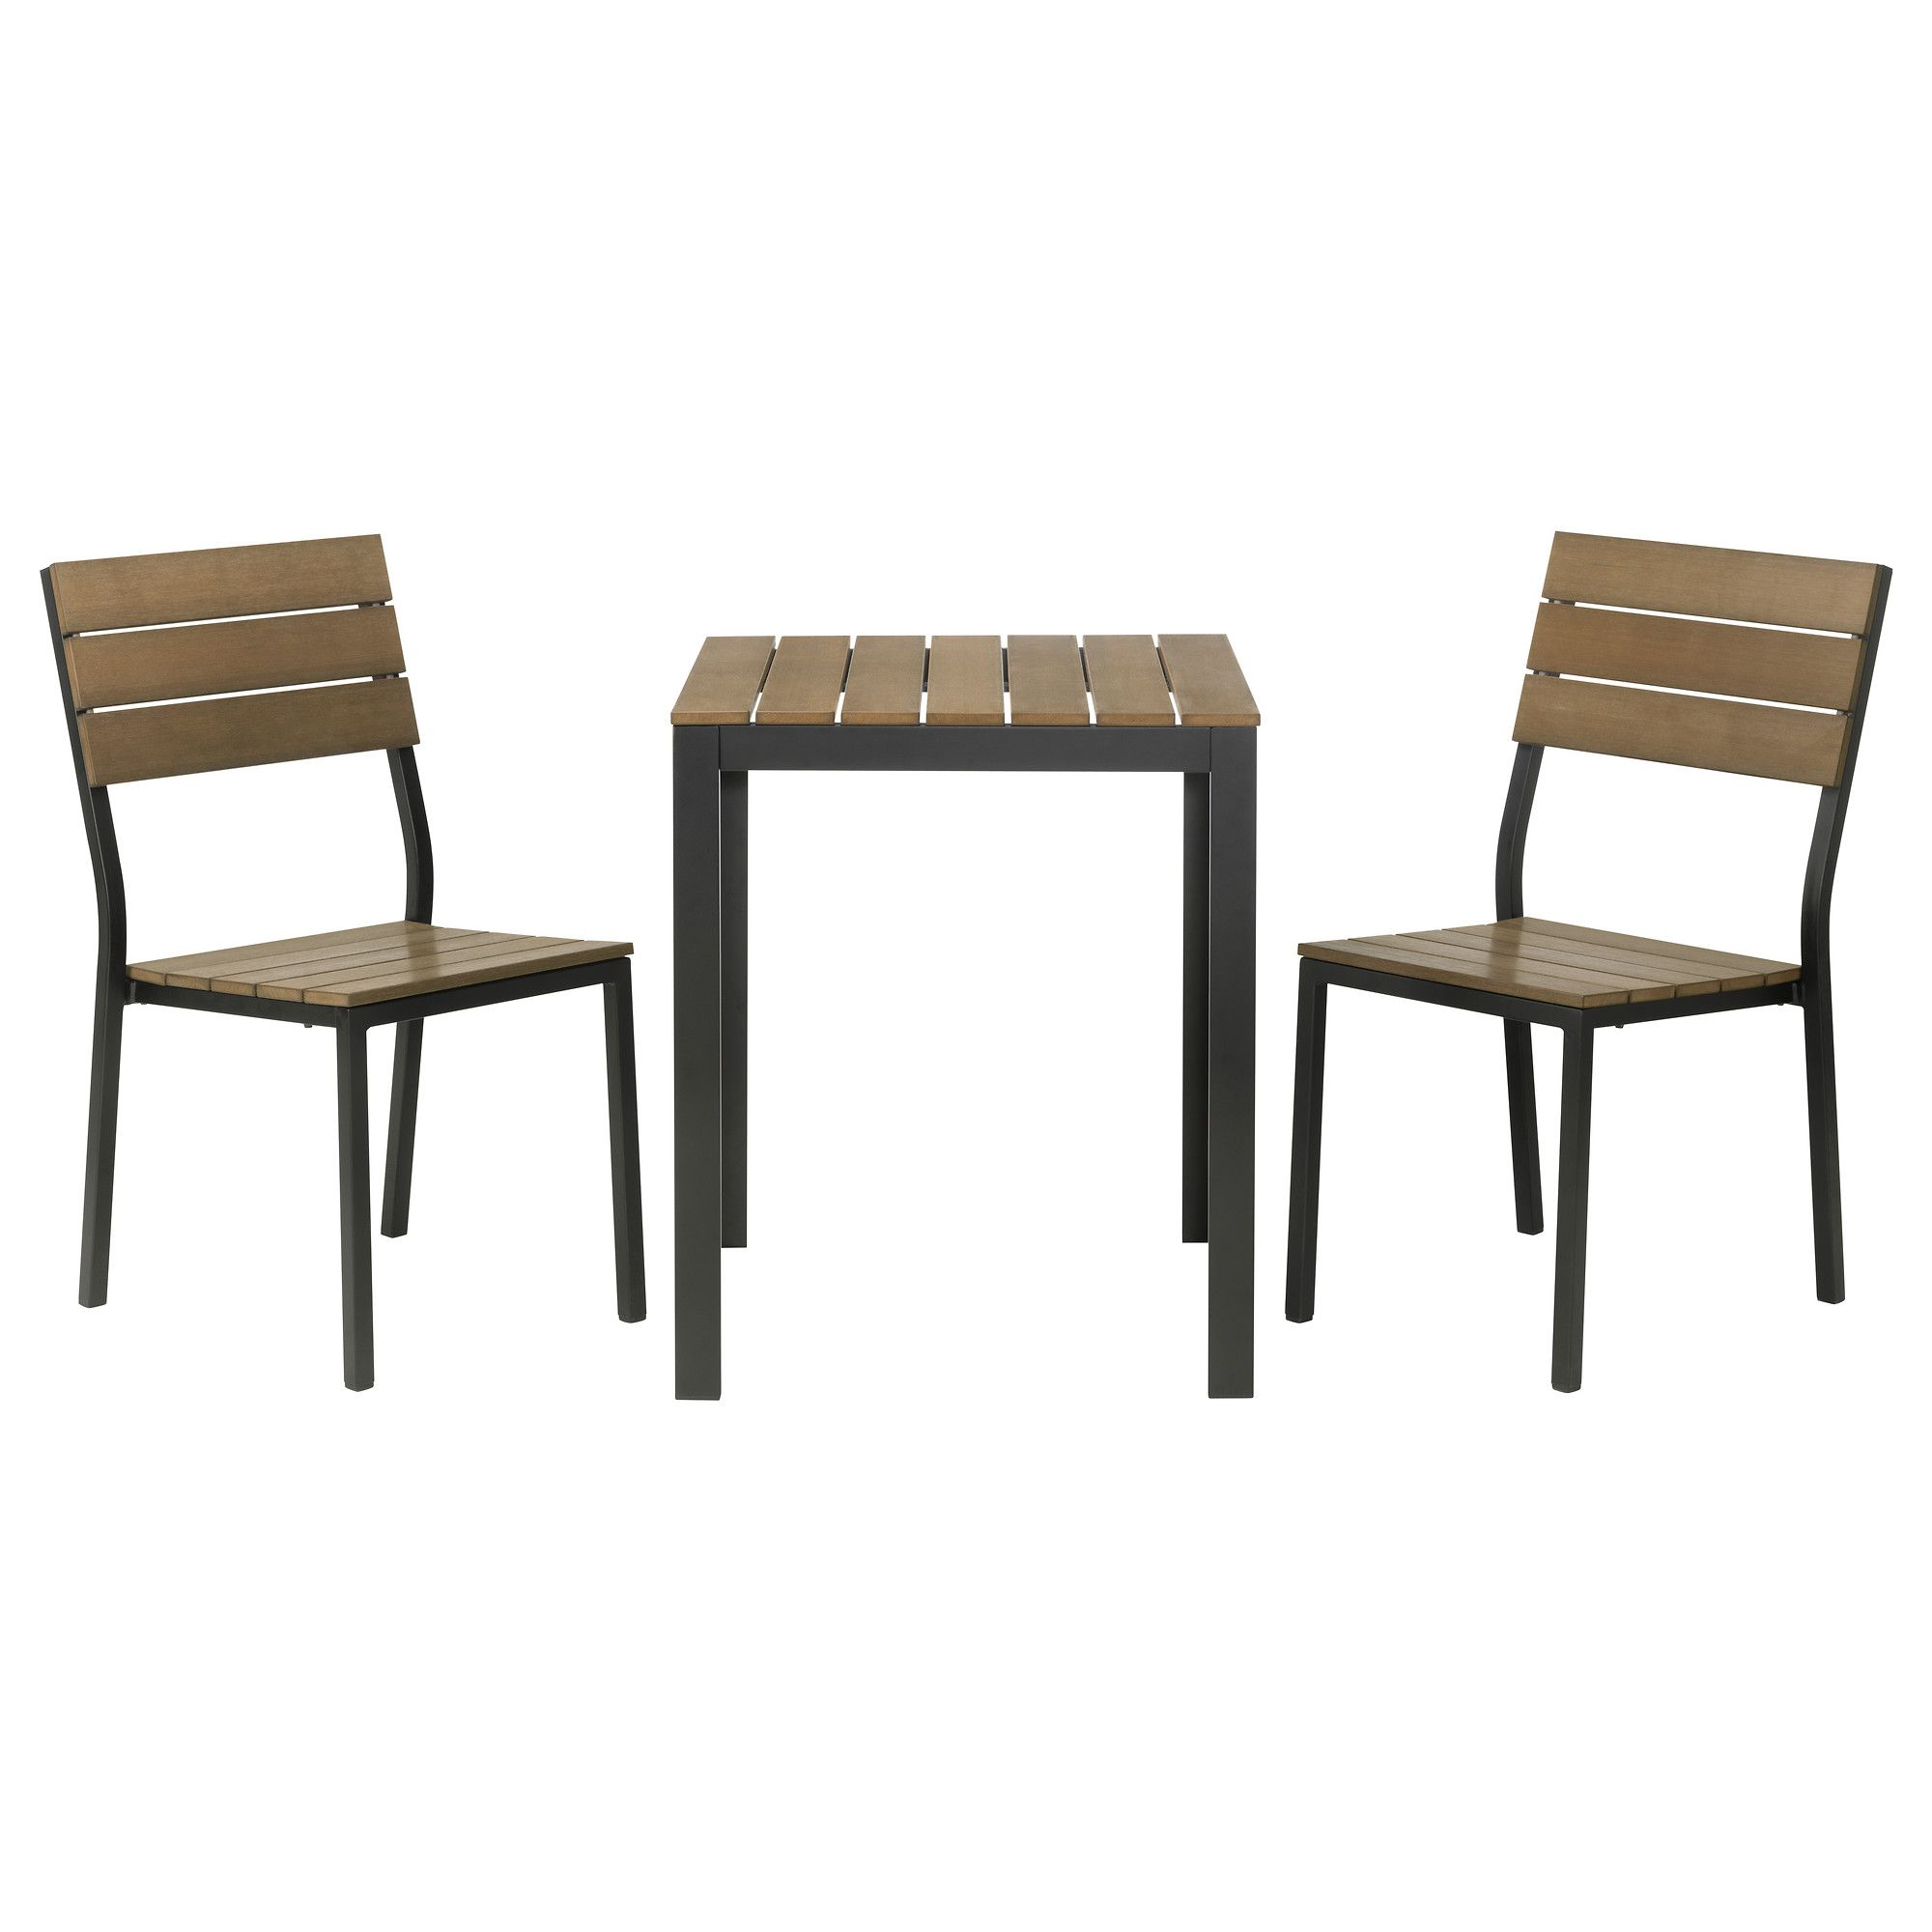 FALSTER Bistro set, black, brown $189.00 The price reflects ...